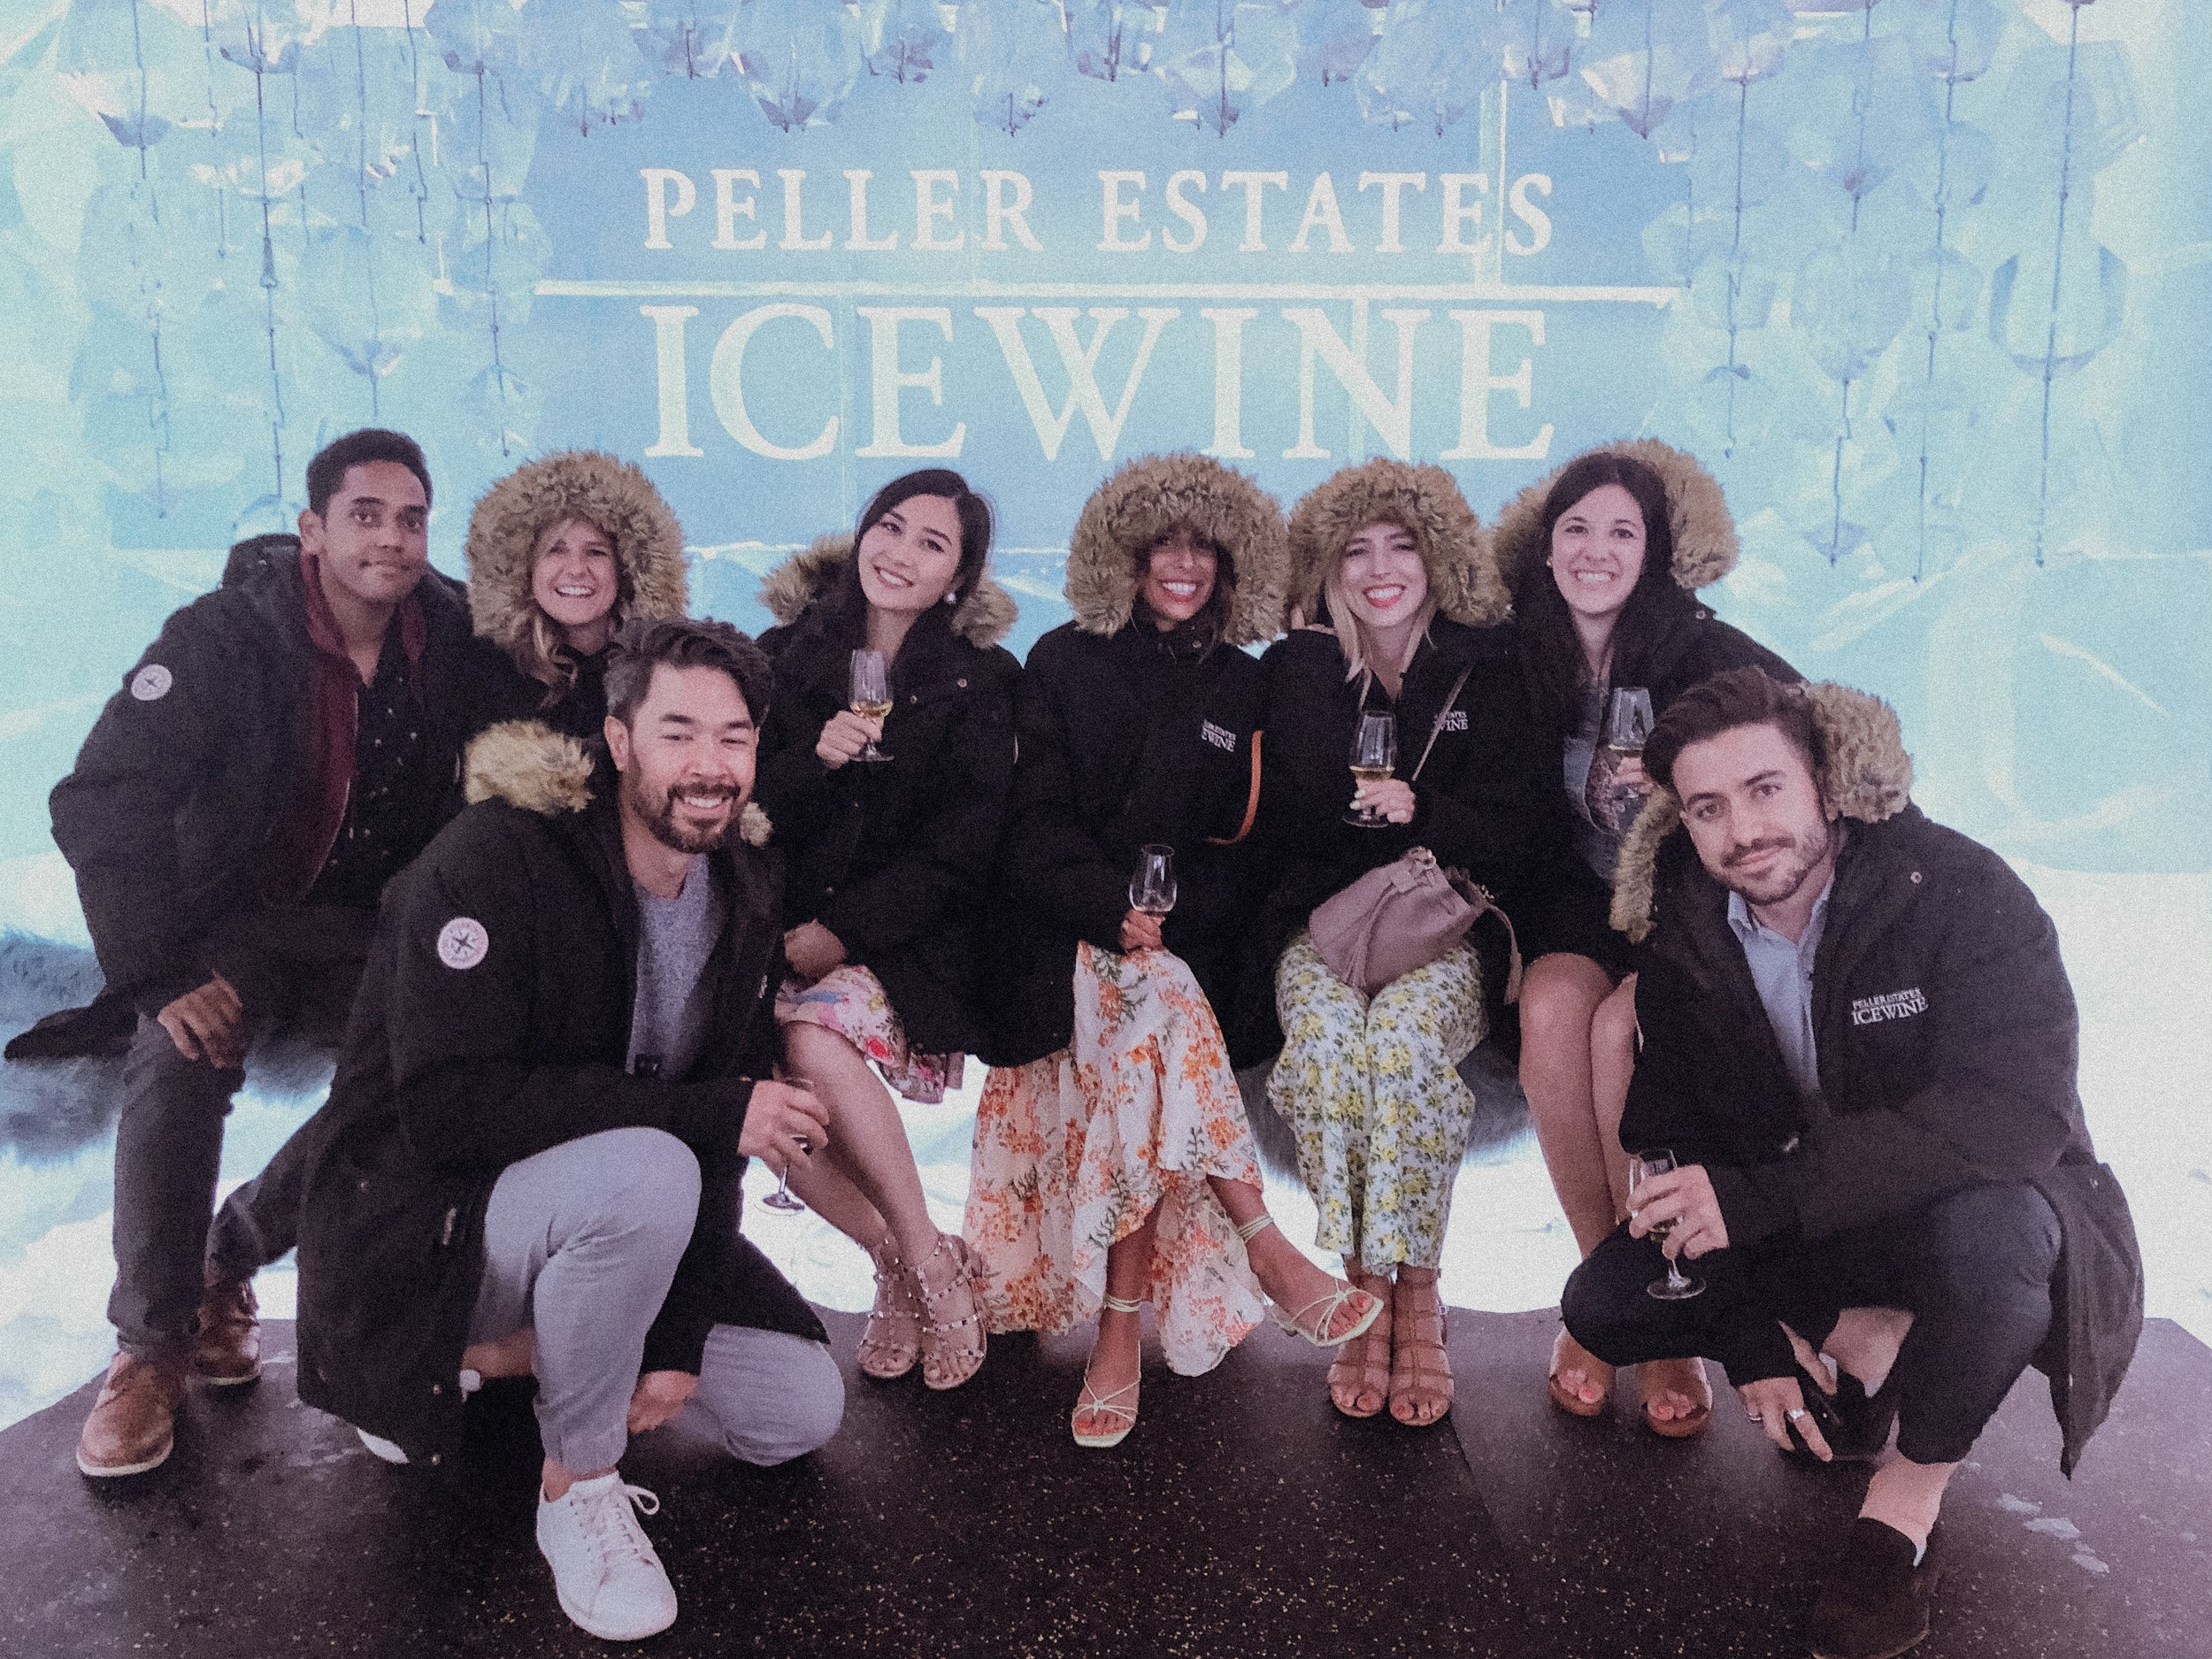 Peller Estates Ice Wine Room